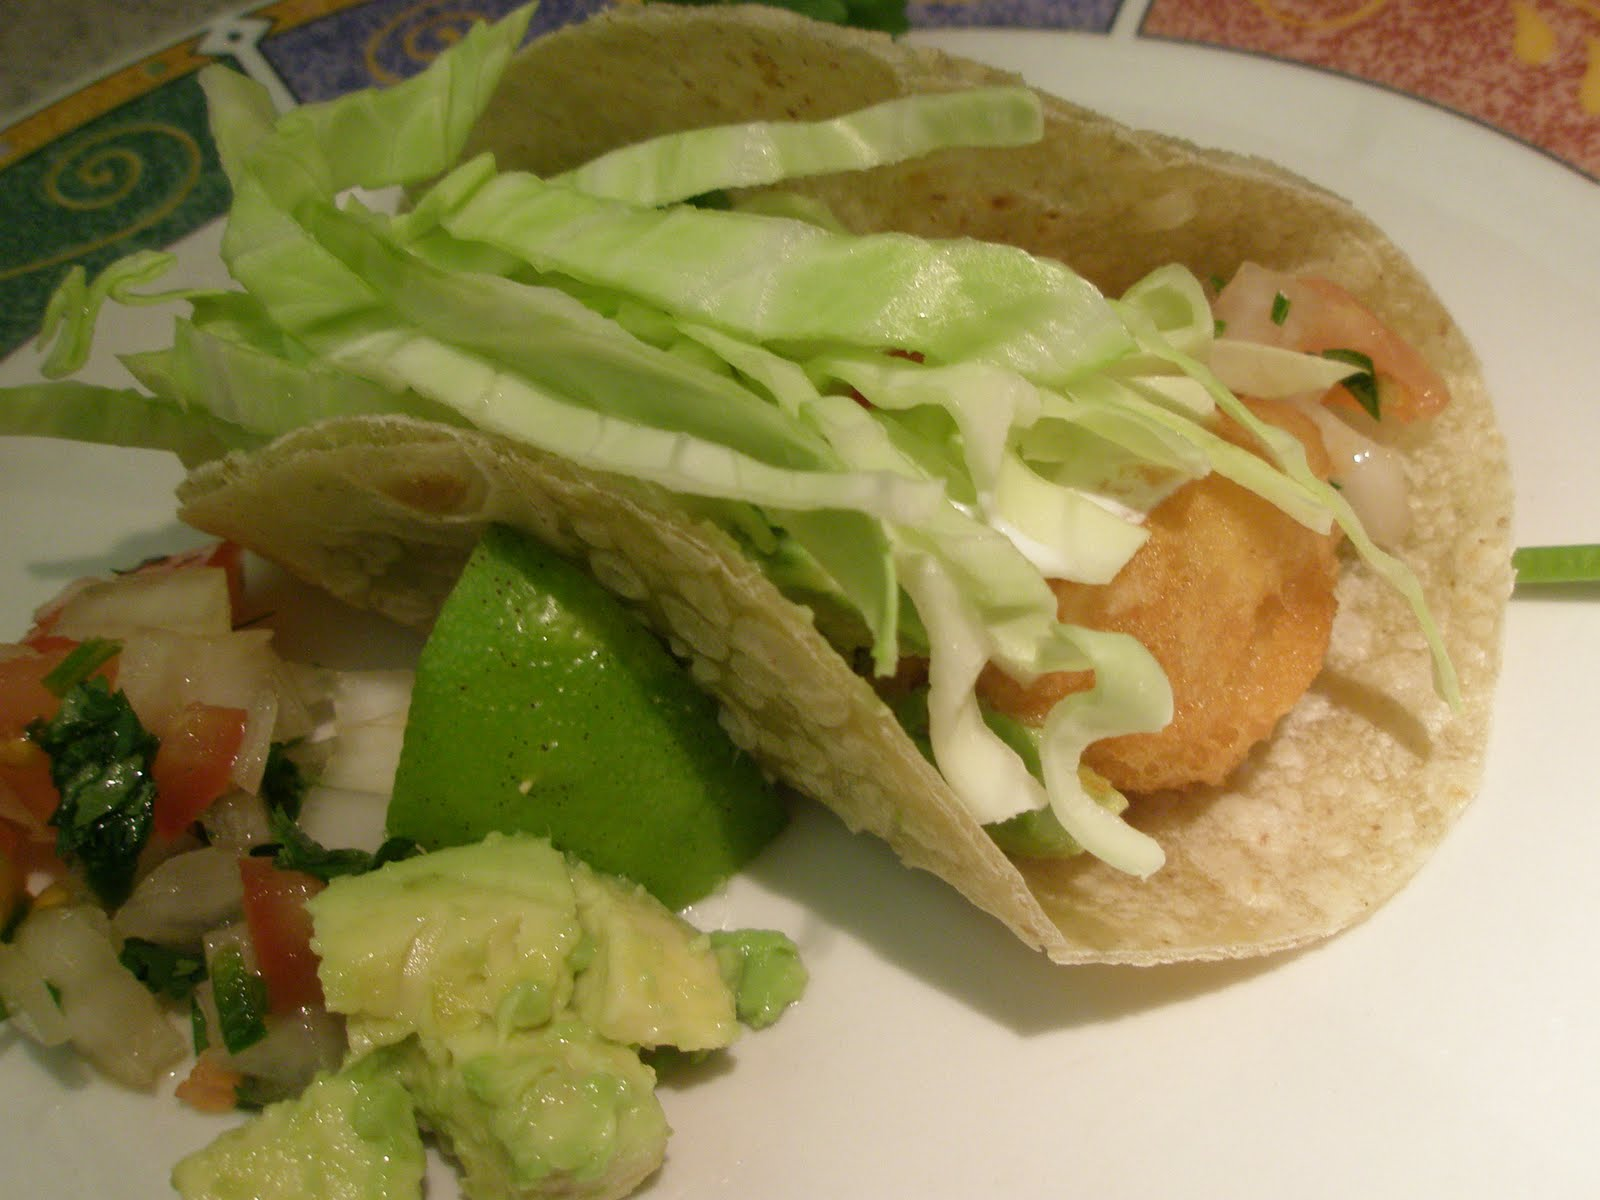 Harmony and dinner gluten free beer battered fish tacos for Fish taco batter